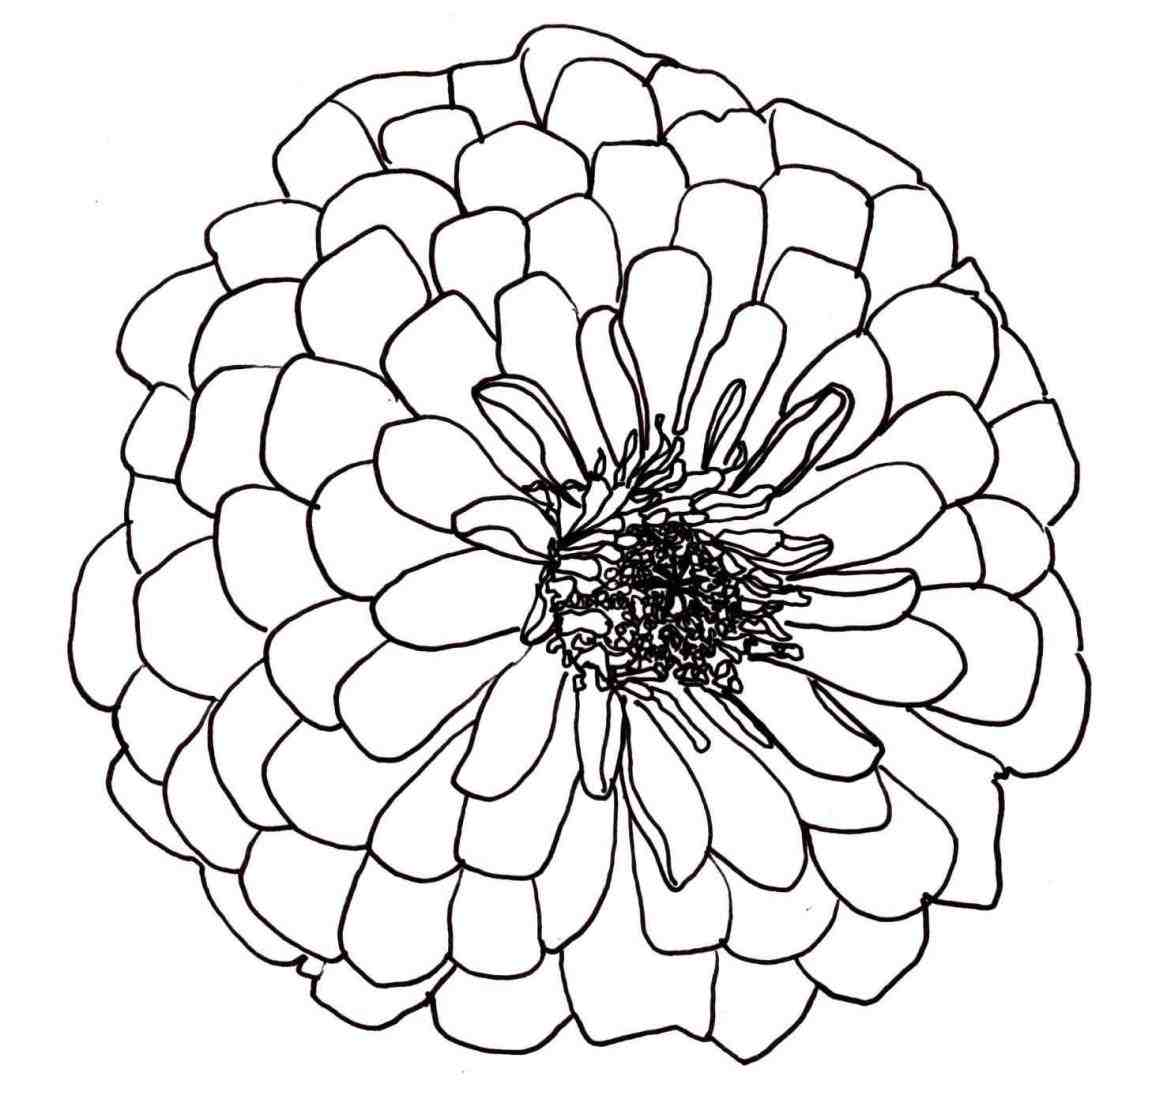 1167x1103 Urldircom Open Rose Drawing Outline Realistic Easy Step By Images